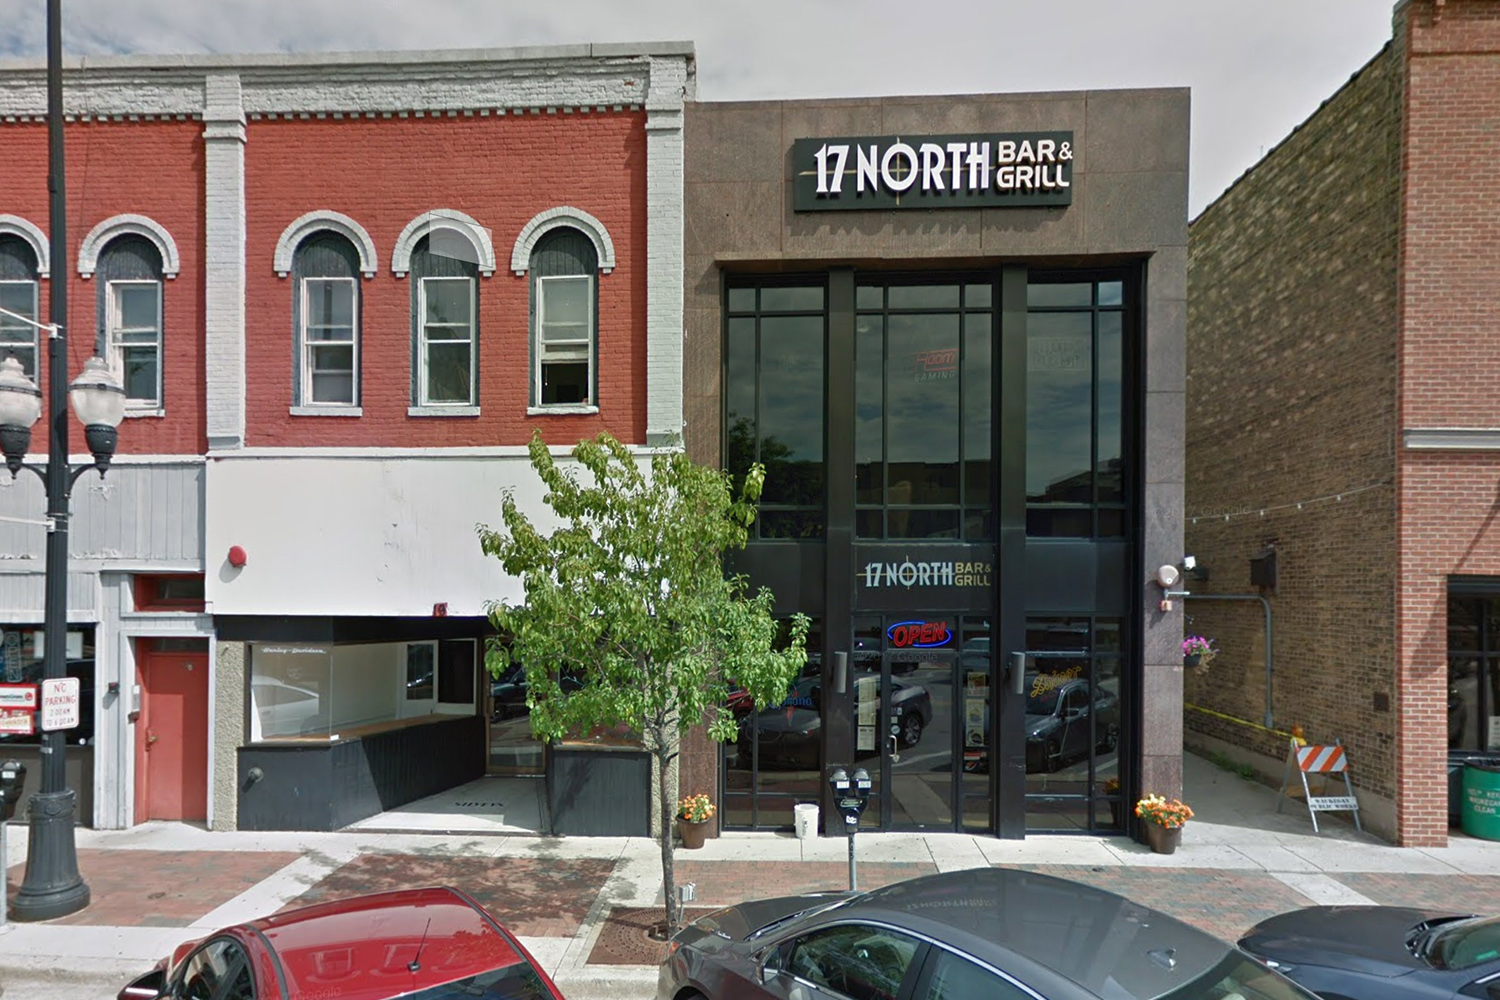 17-north-bar-grill-drink-specials-lunch-court-house-waukegan-local-favorite-genesee-theatre-show-night-food-strategy-driven-marketing.jpg